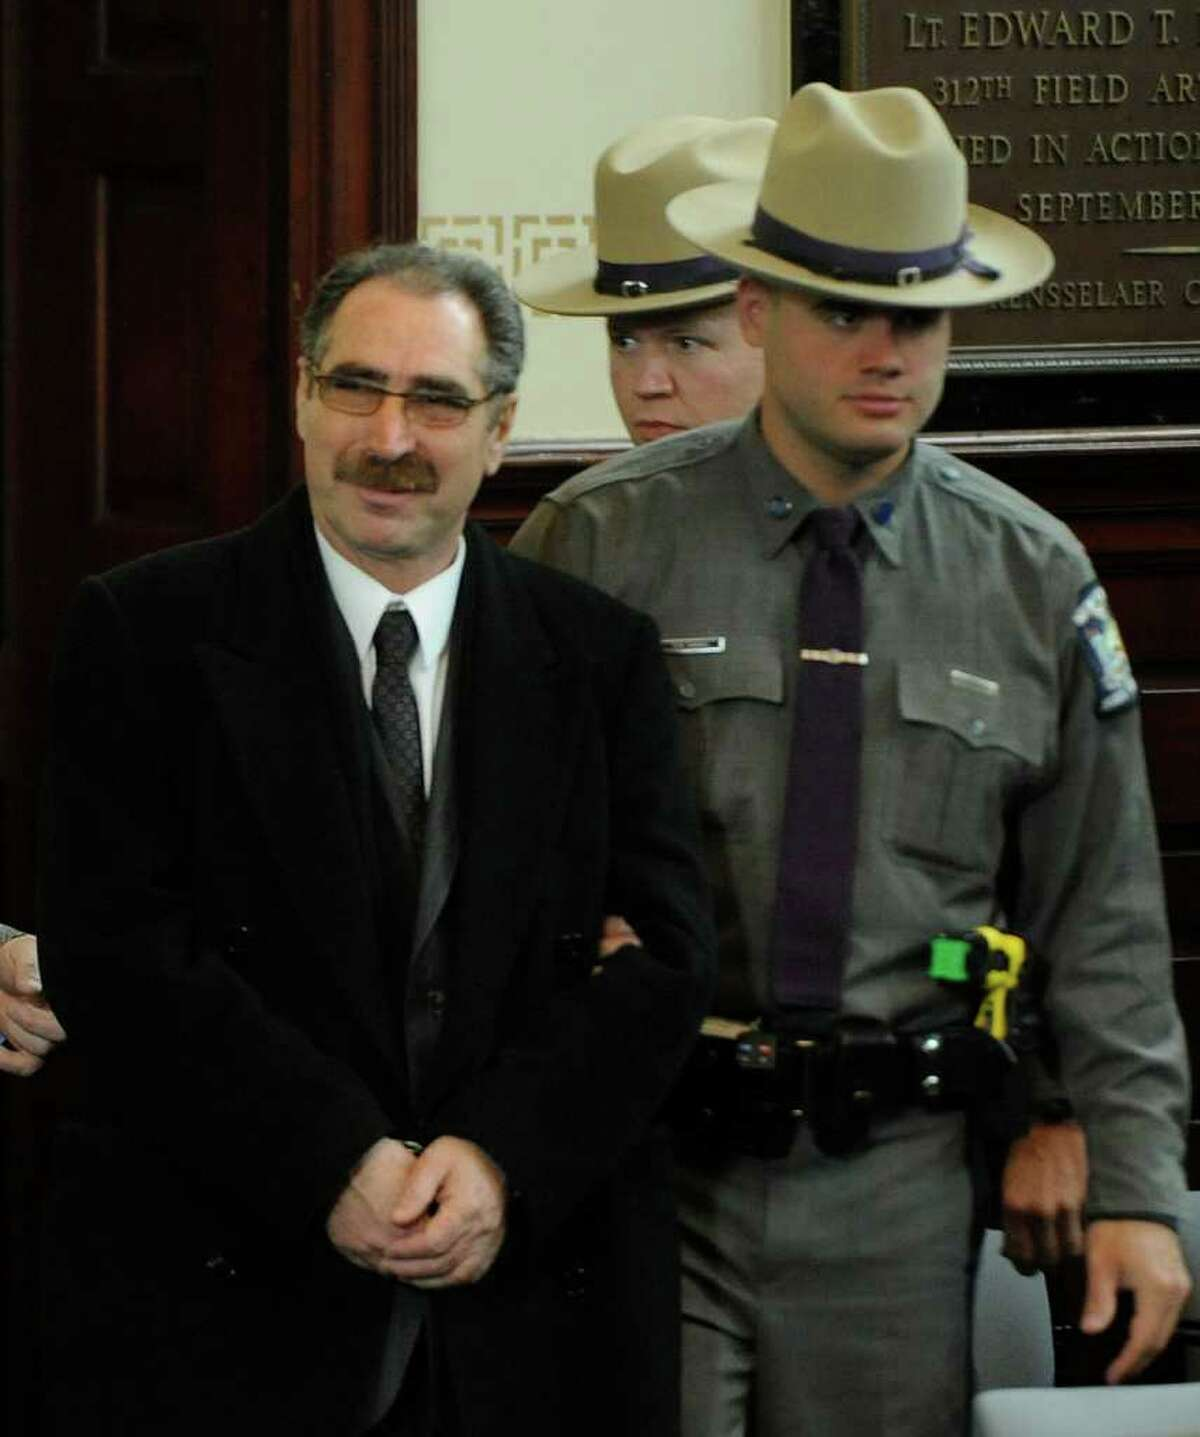 Michael LaPorto is lead in to the courtroom in the Rensselaer County Courthouse in Troy January 28, 2011 to face charges of alleged voter fraud after a Grand Jury handed up sealed indictments naming him and Edward McDonough Jr. (Skip Dickstein / Times Union)